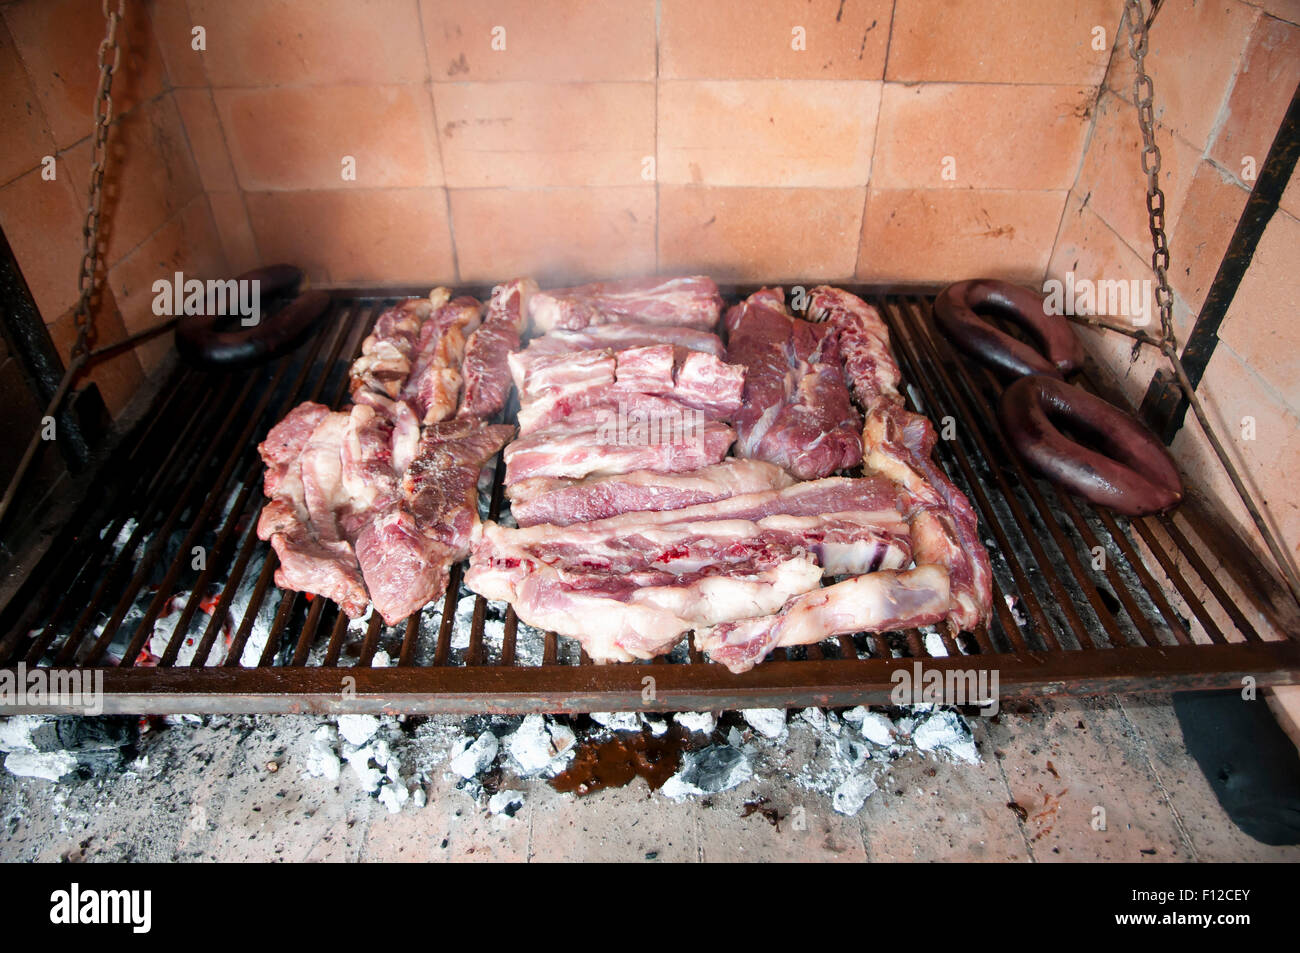 Barbecue from Argentina (Raw) - Stock Image